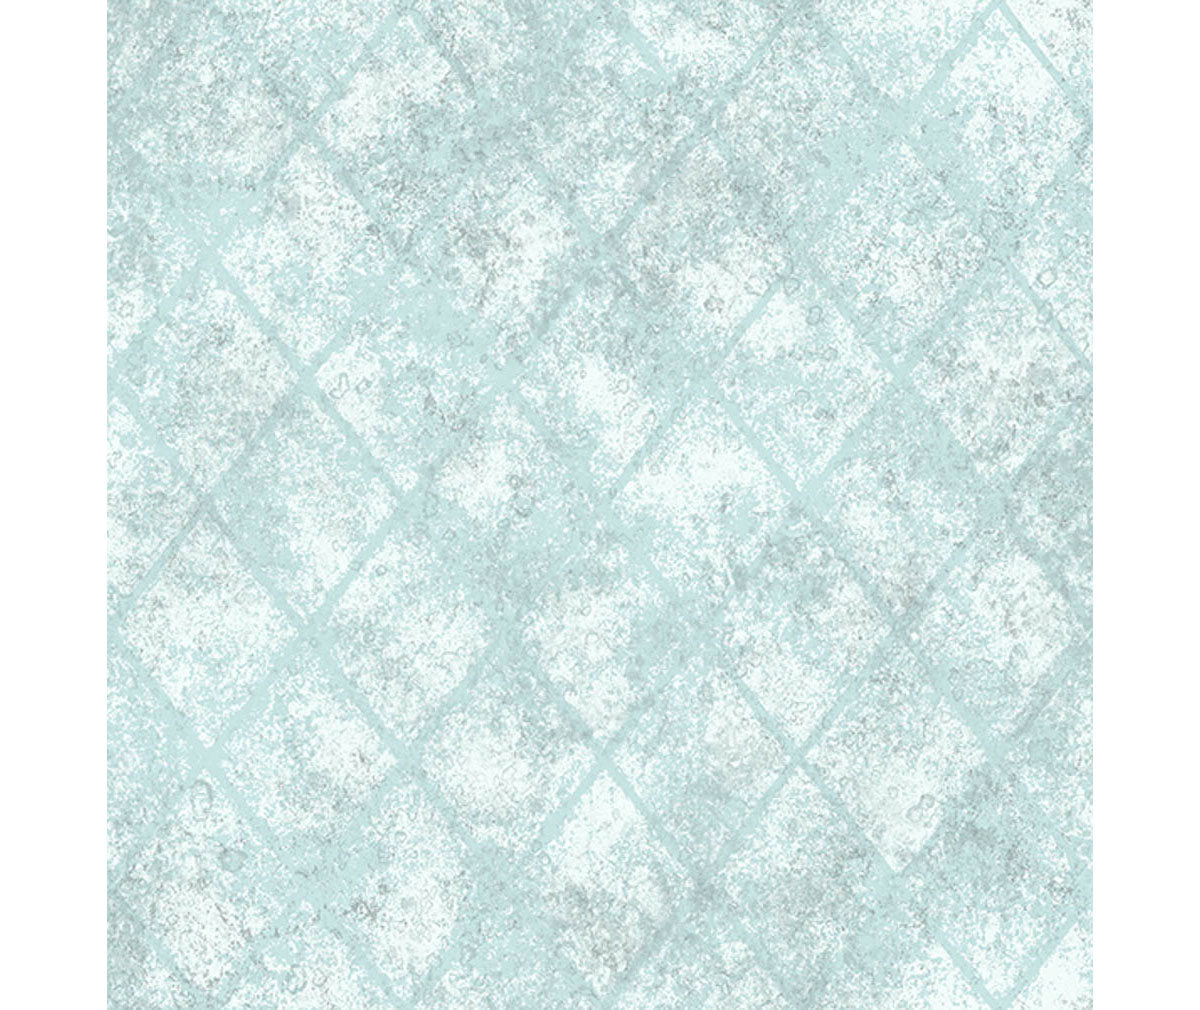 Mercury Glass Blue Distressed Metallic Wallpaper available at Barrydowne Paint